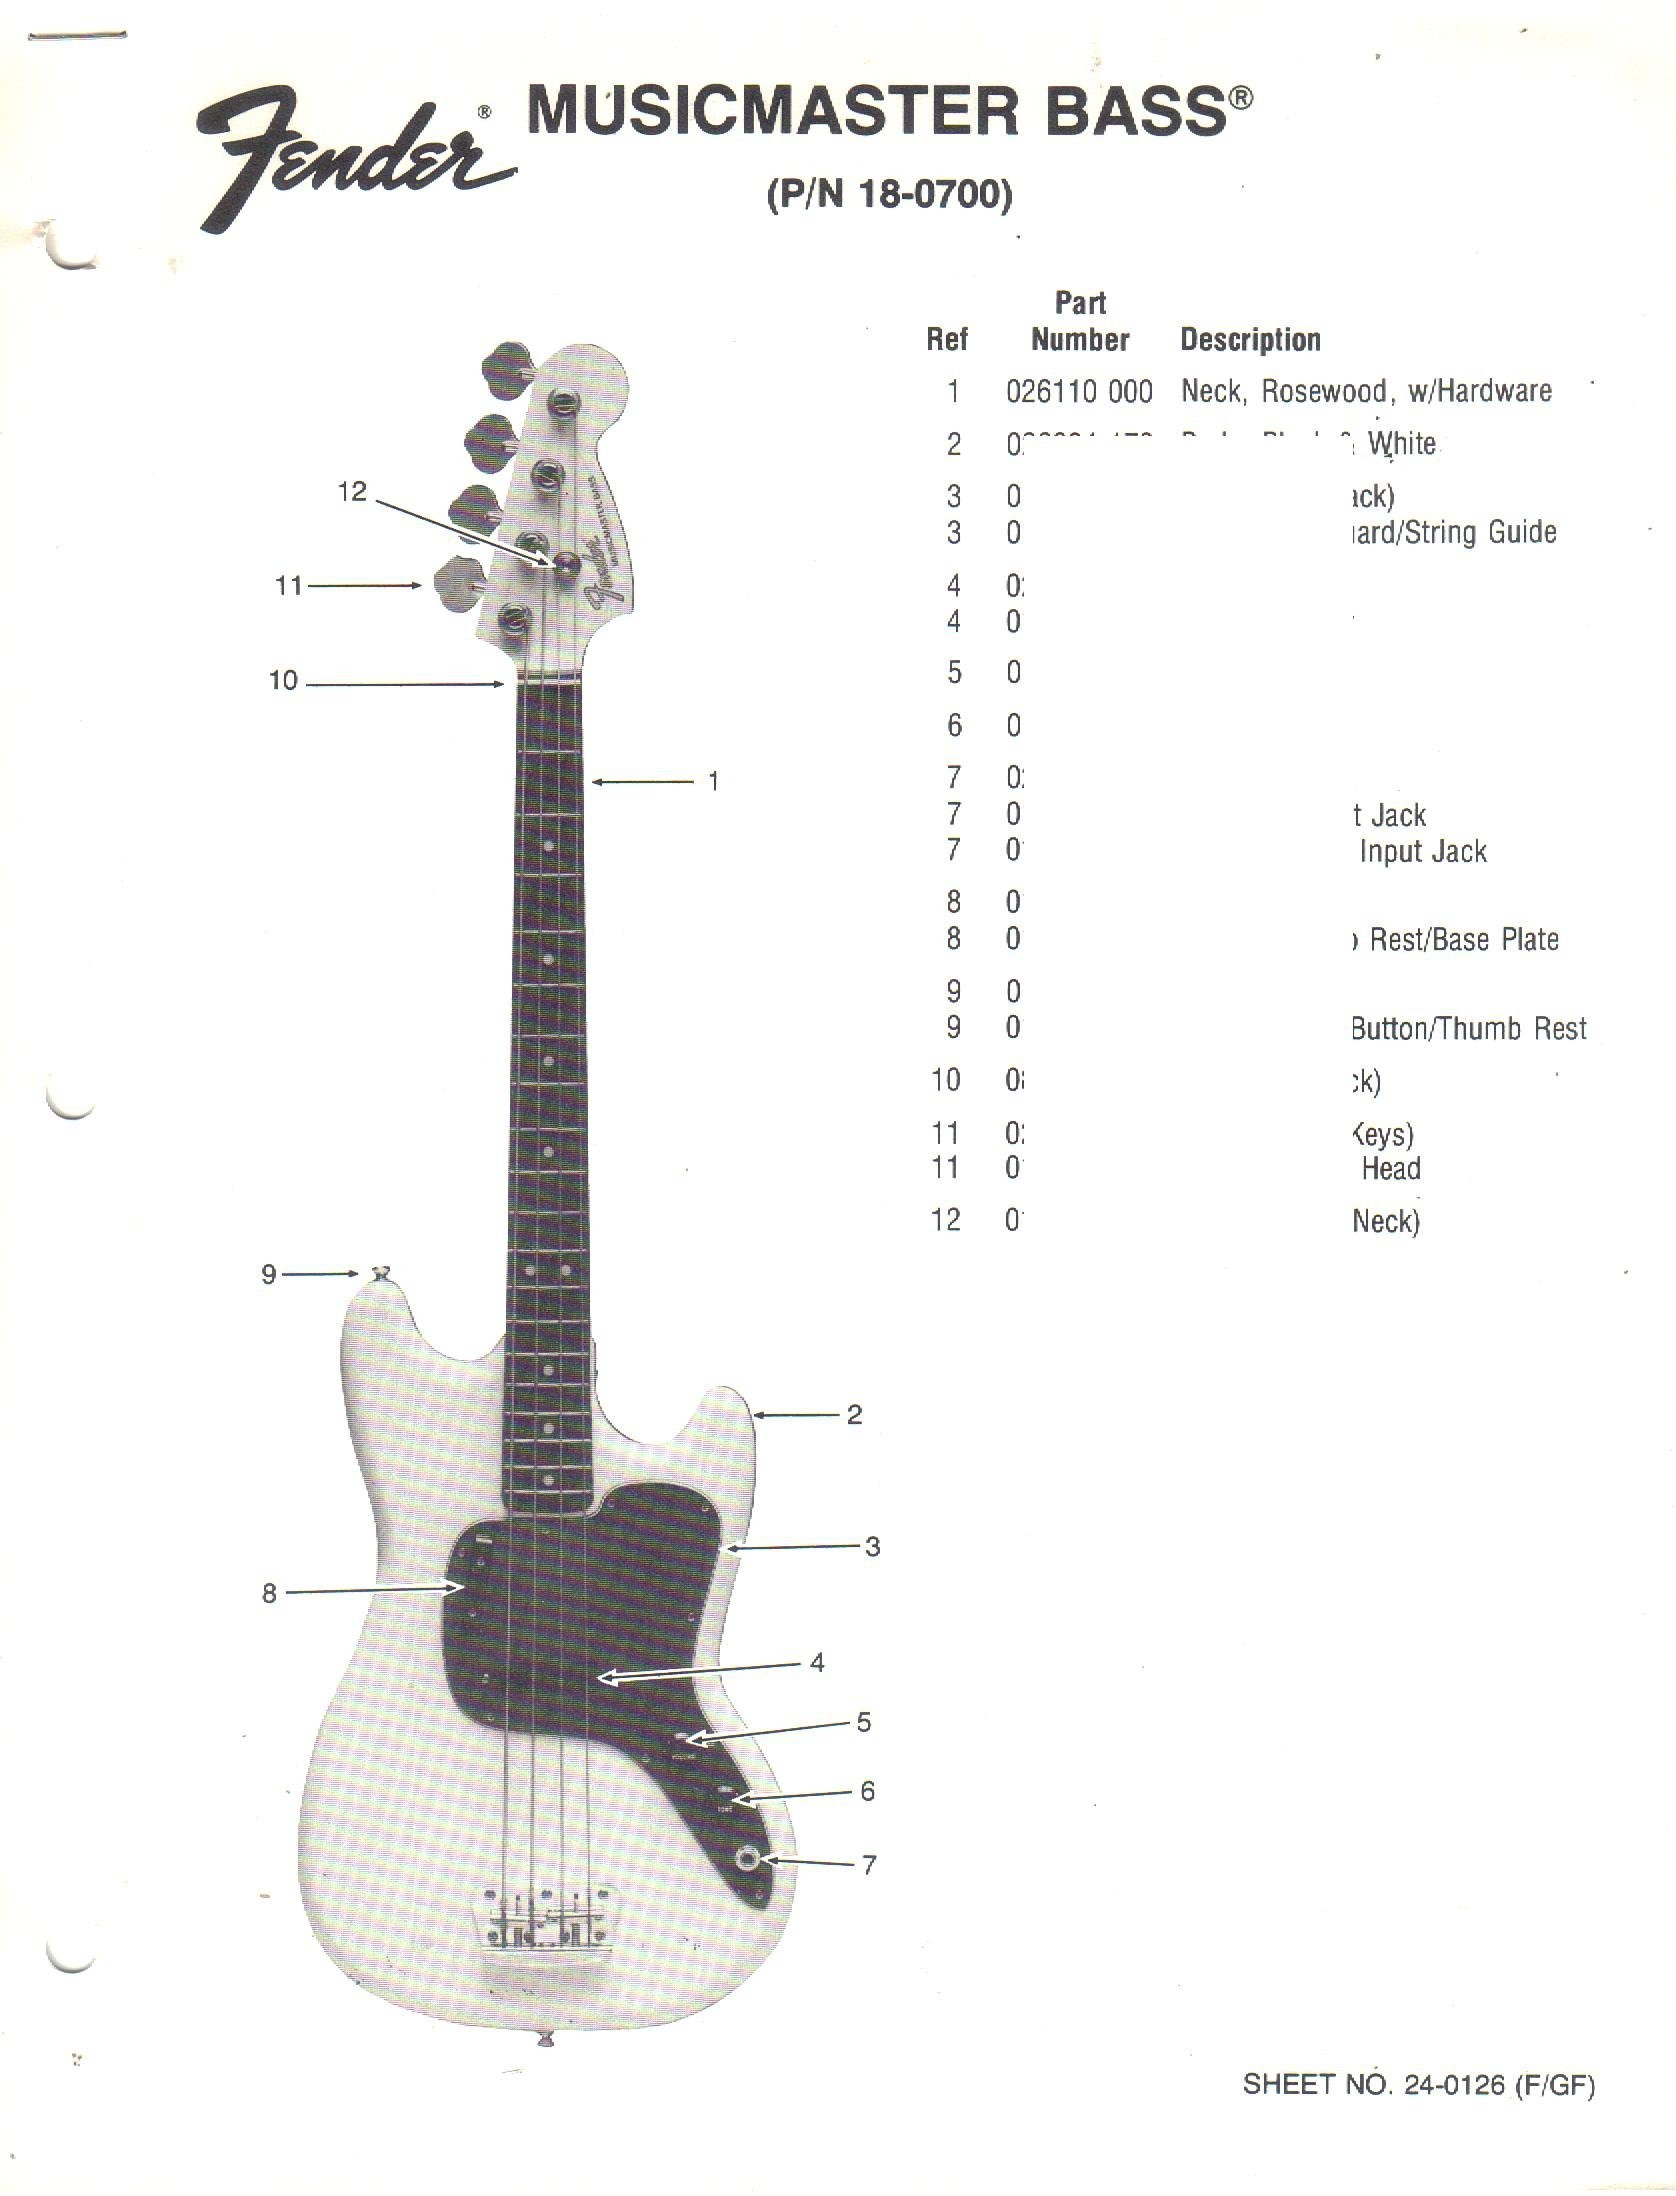 Fender precision bass wiring diagram my wiring diagram p bass wiring diagram awesome pretty fender musicmaster bass wiring asfbconference2016 Image collections